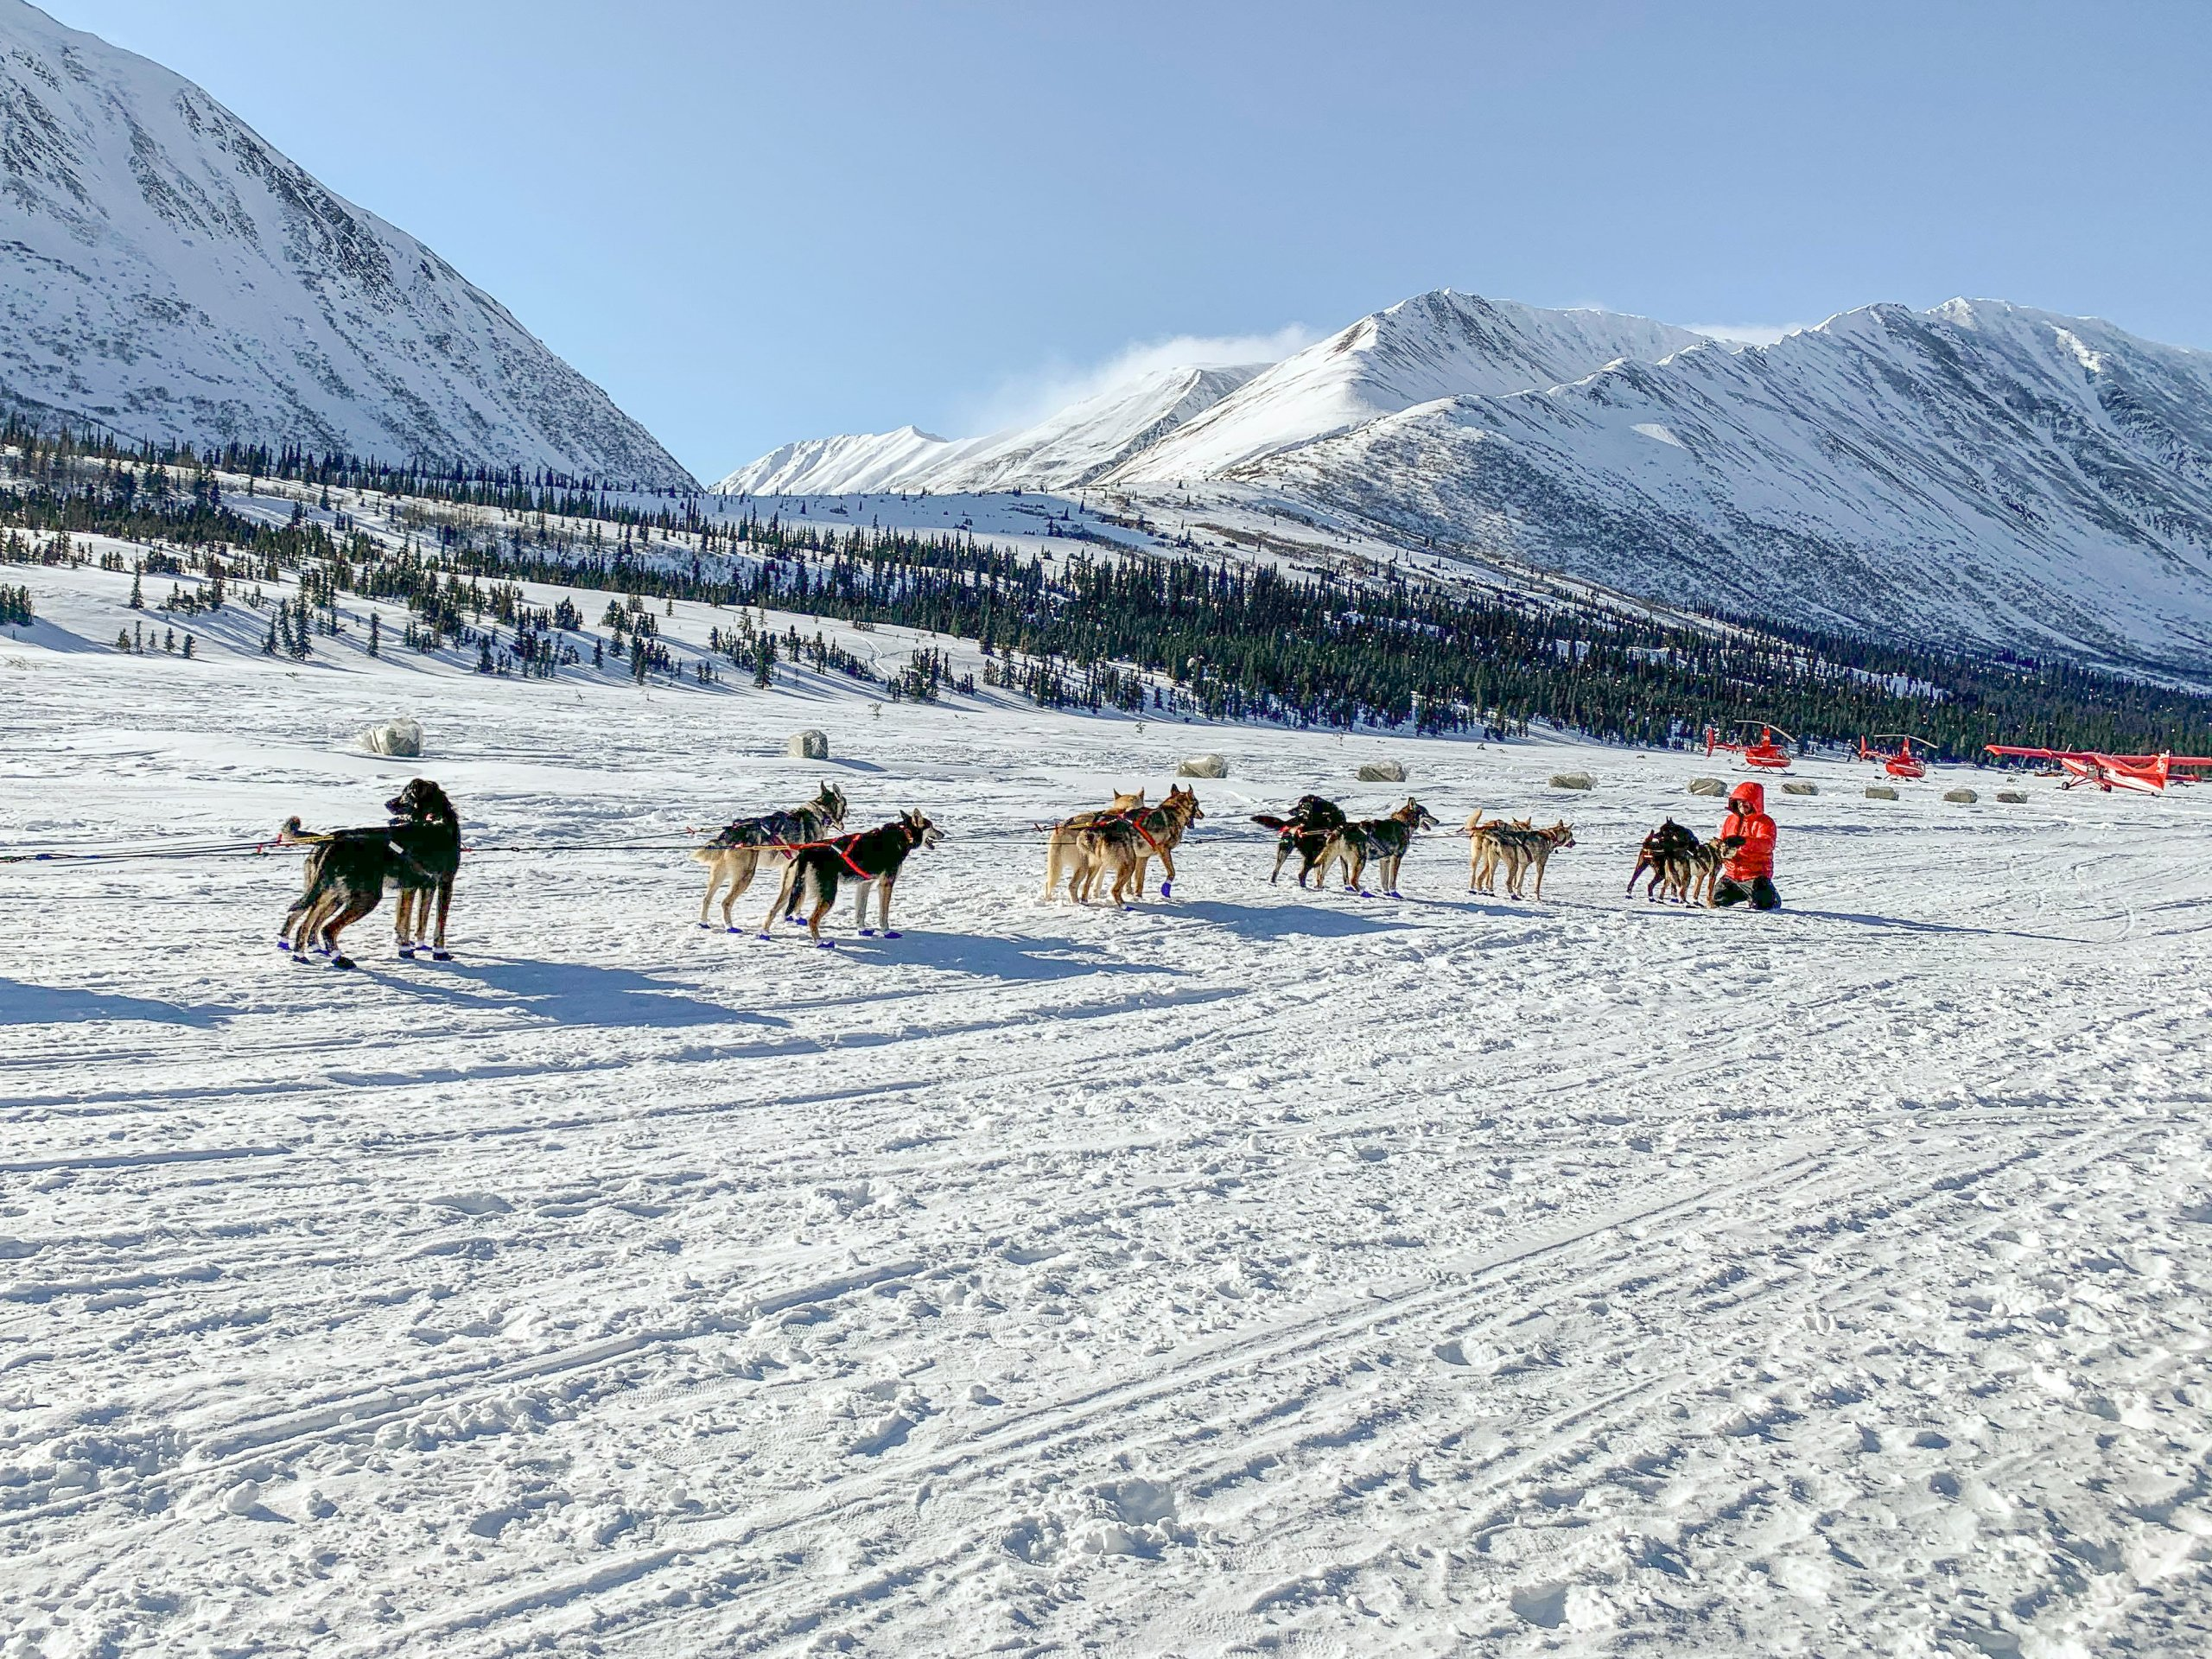 The 2020 Iditarod Dog Sled Race in Alaska